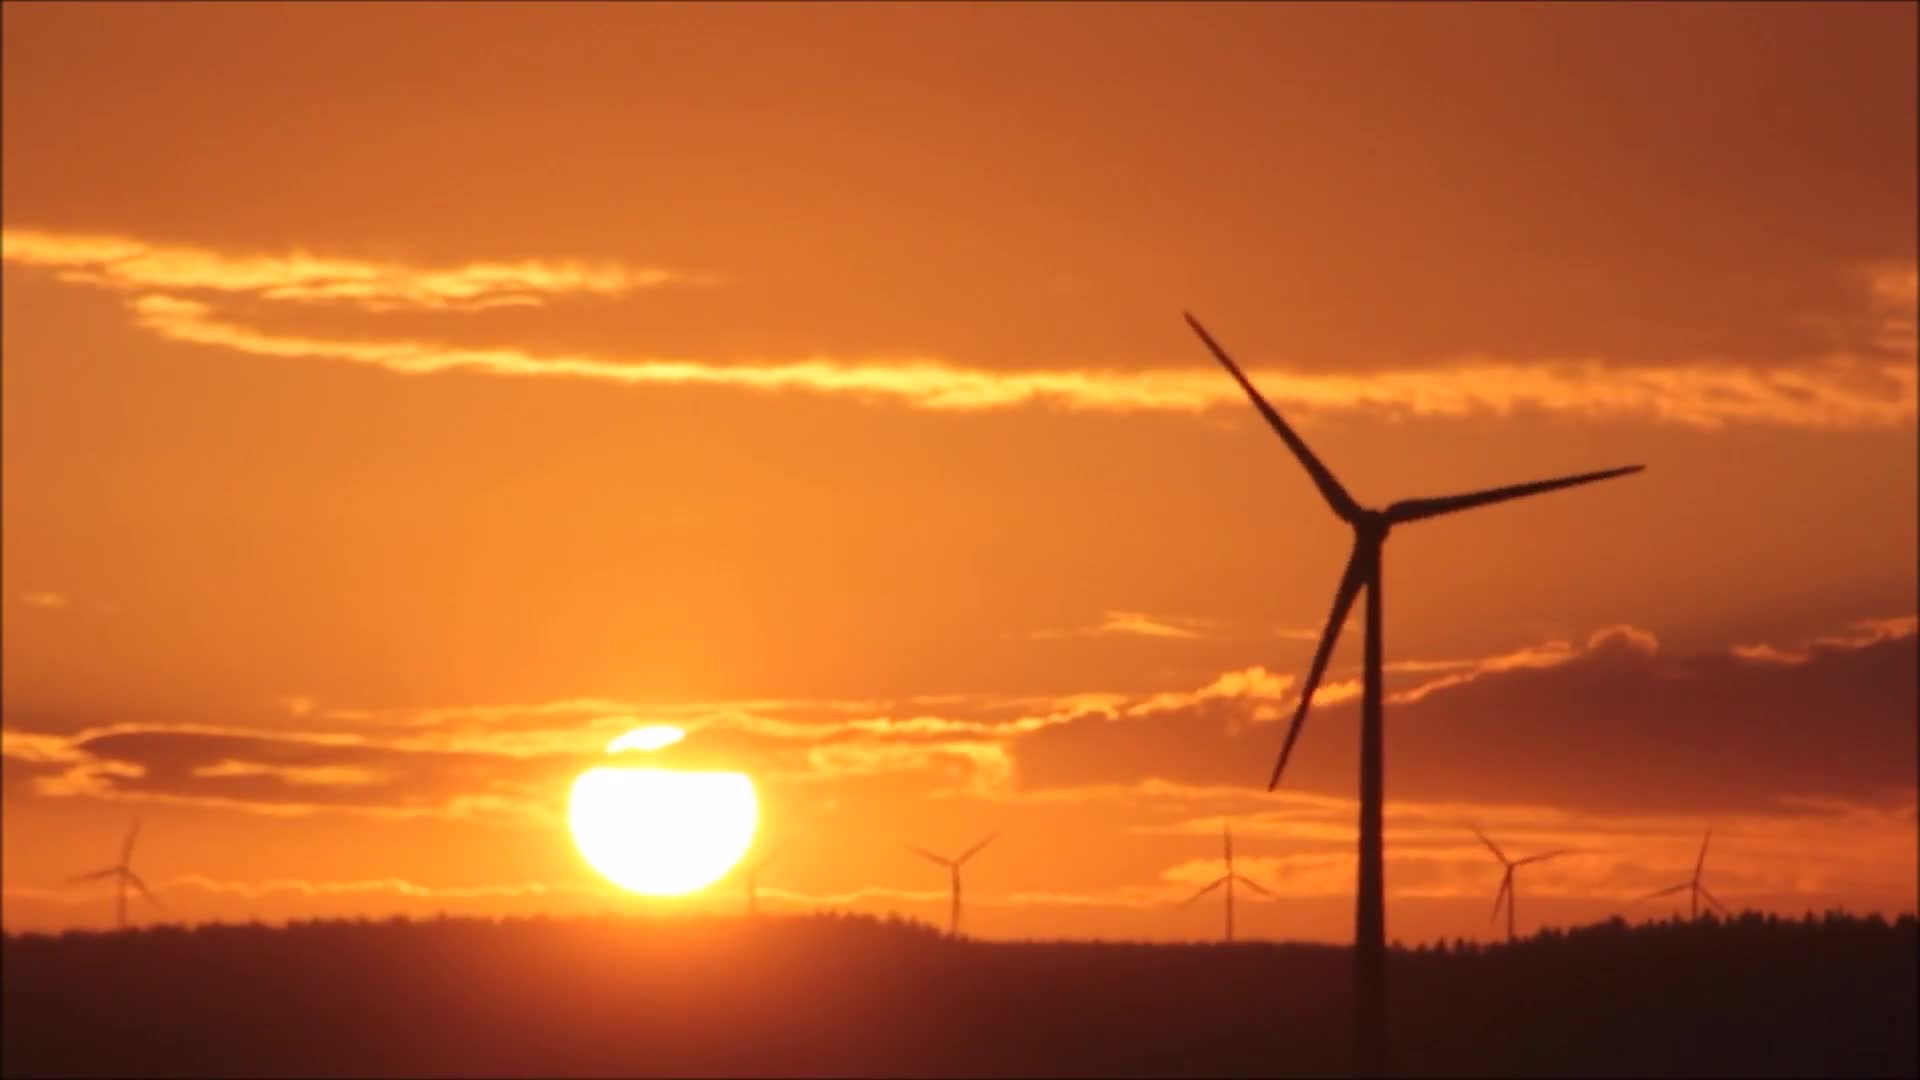 Video footage of windmills during sunset